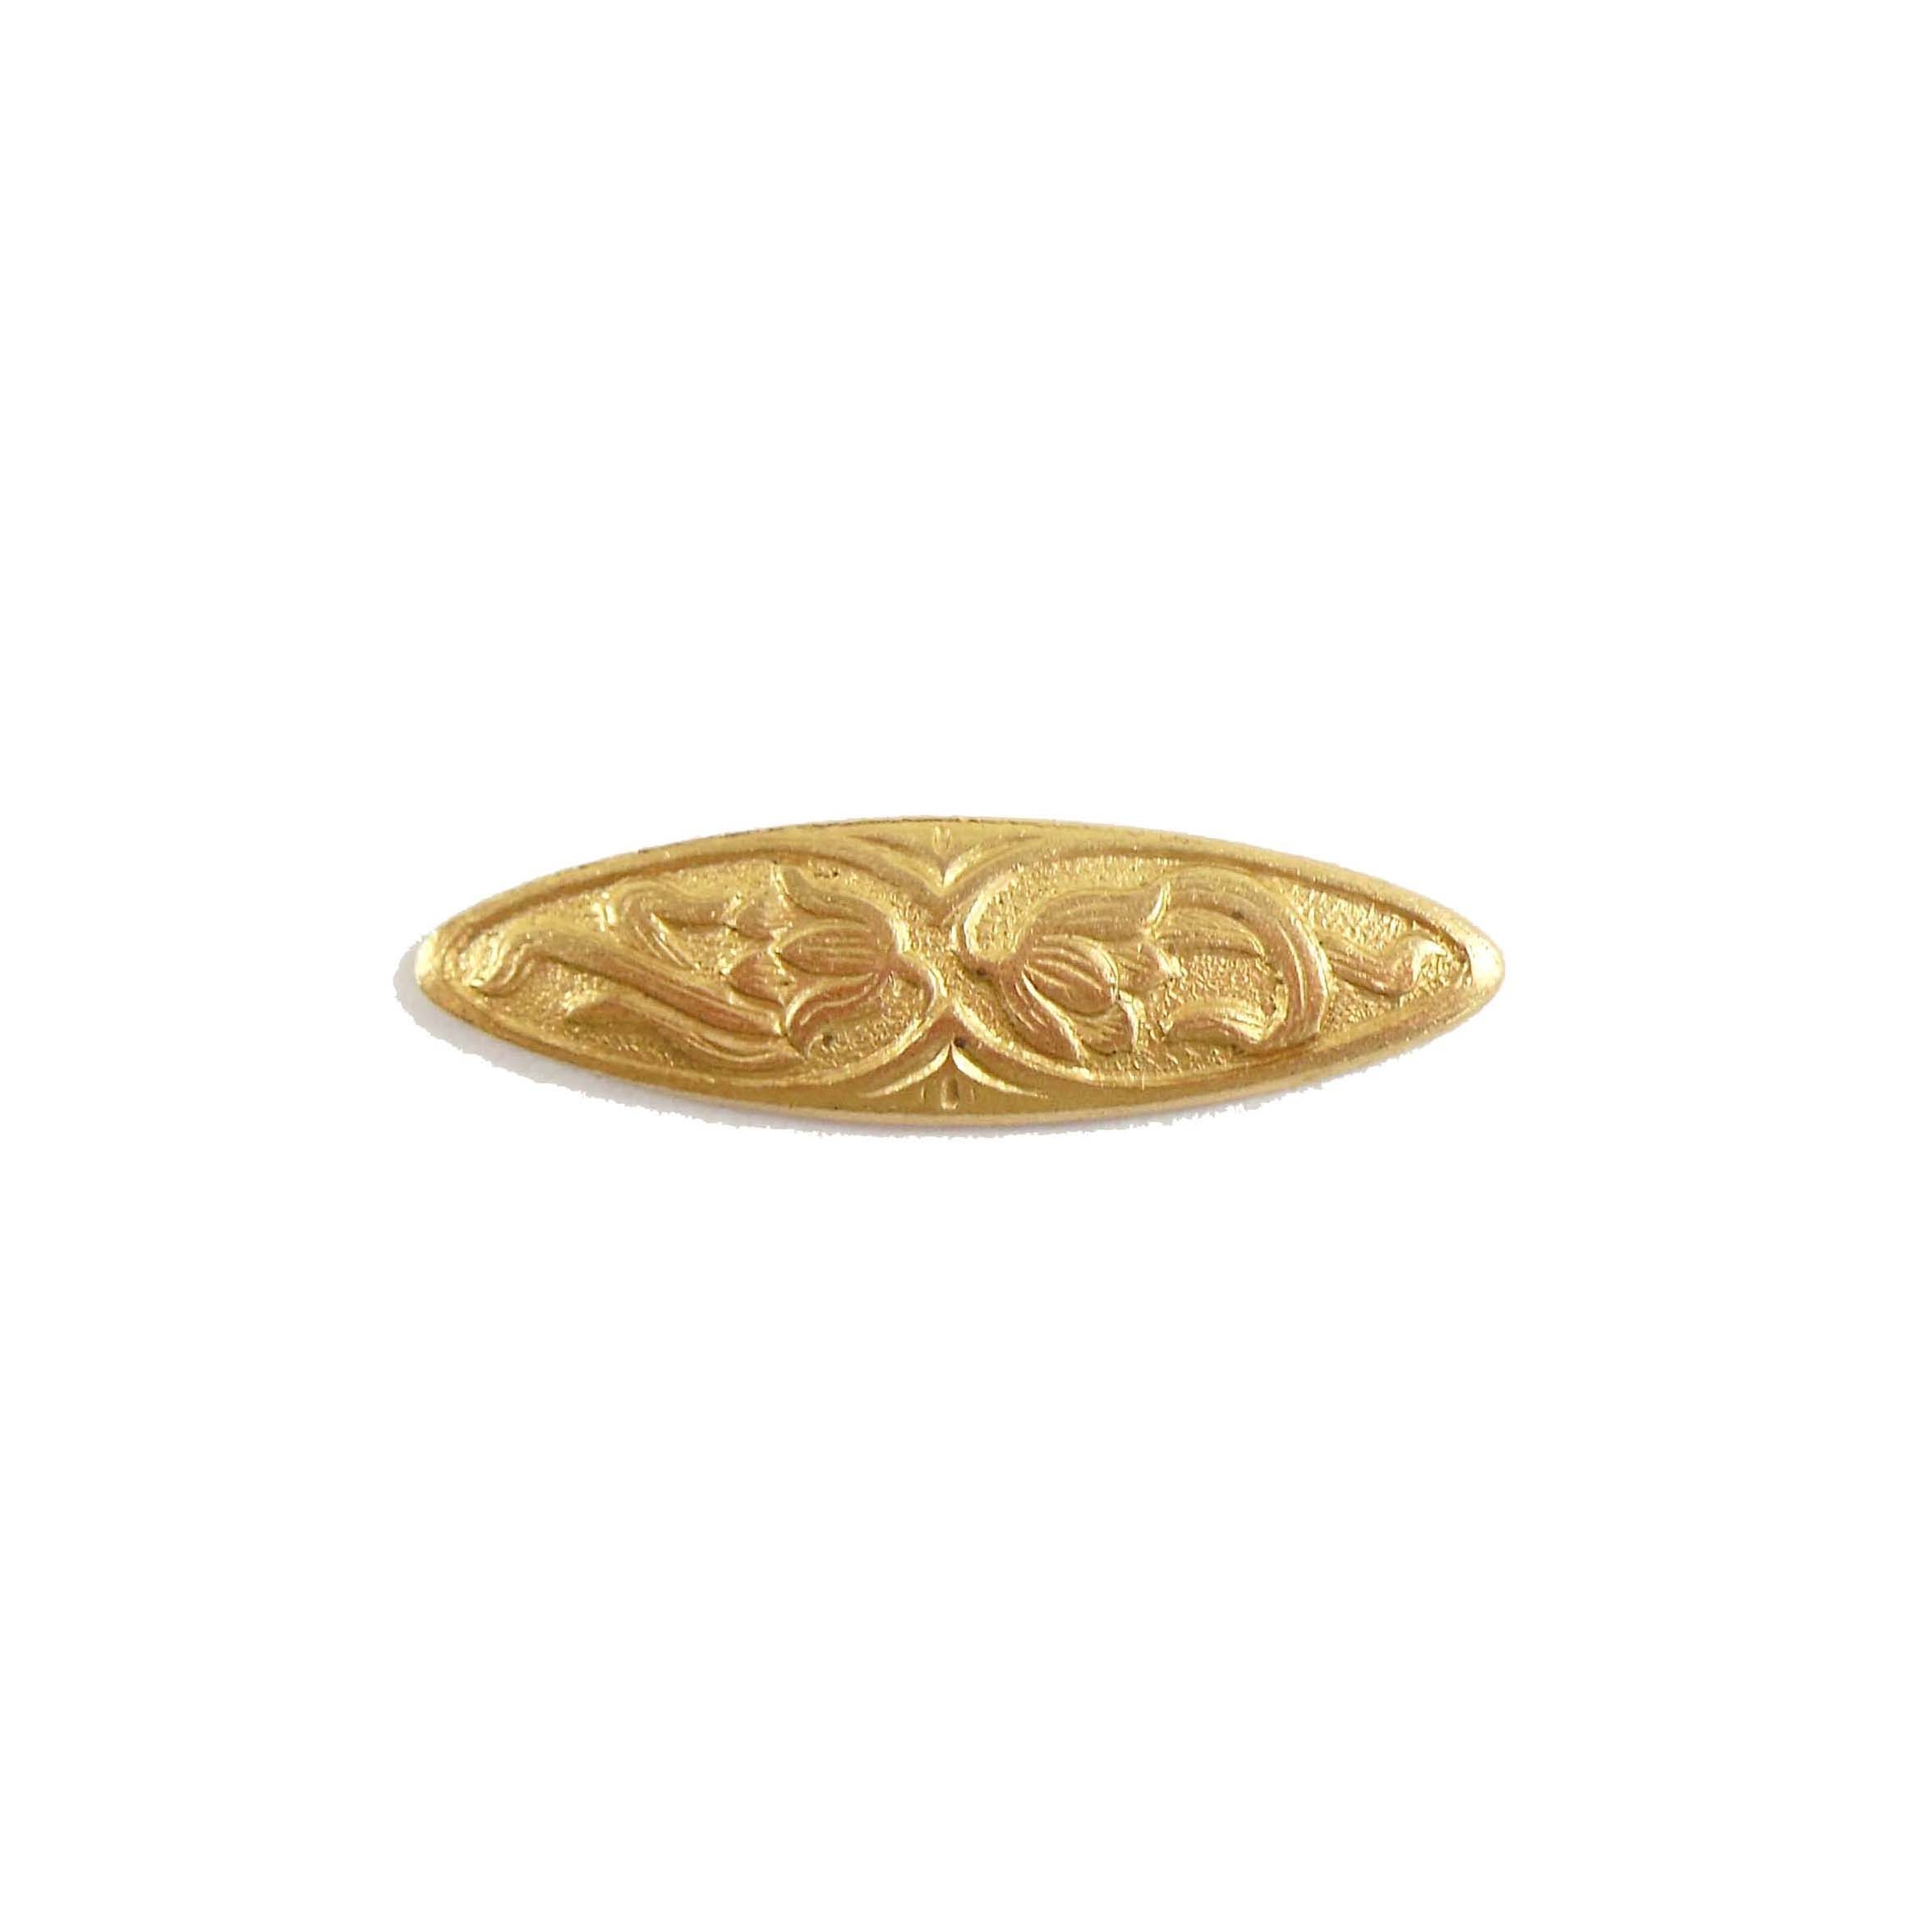 brass floral bar, jewelry making, raw brass, 26mm